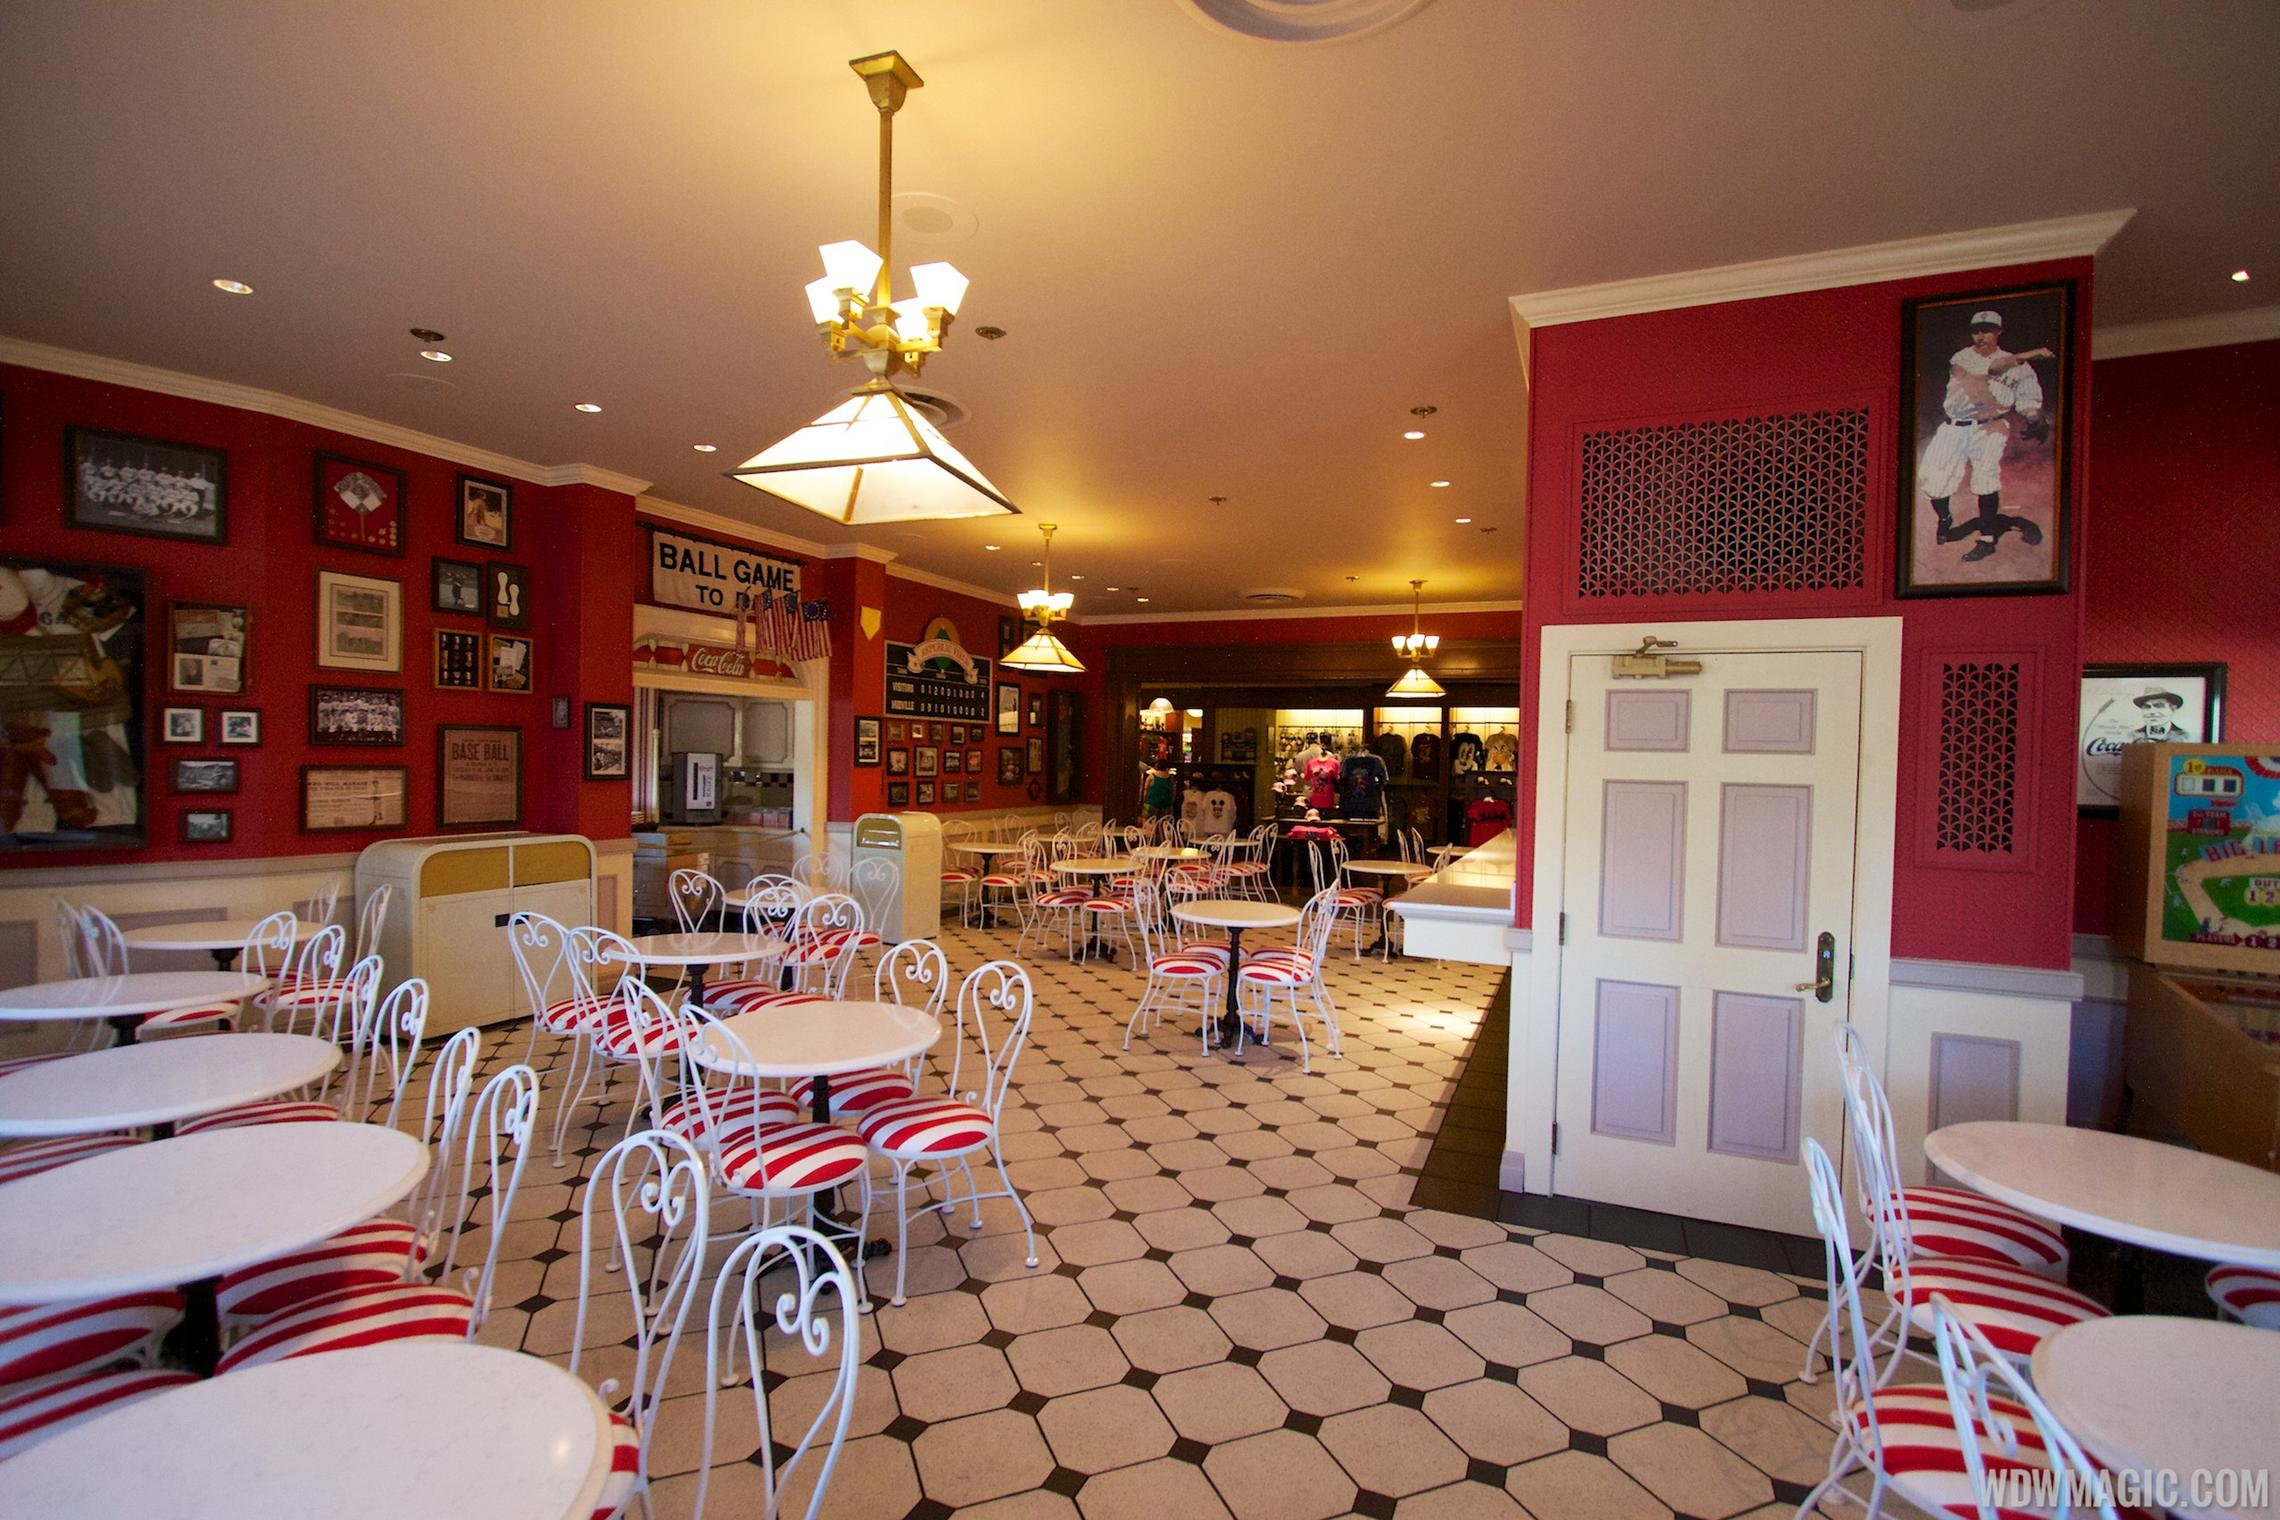 The new indoor dining room at Casey's Corner